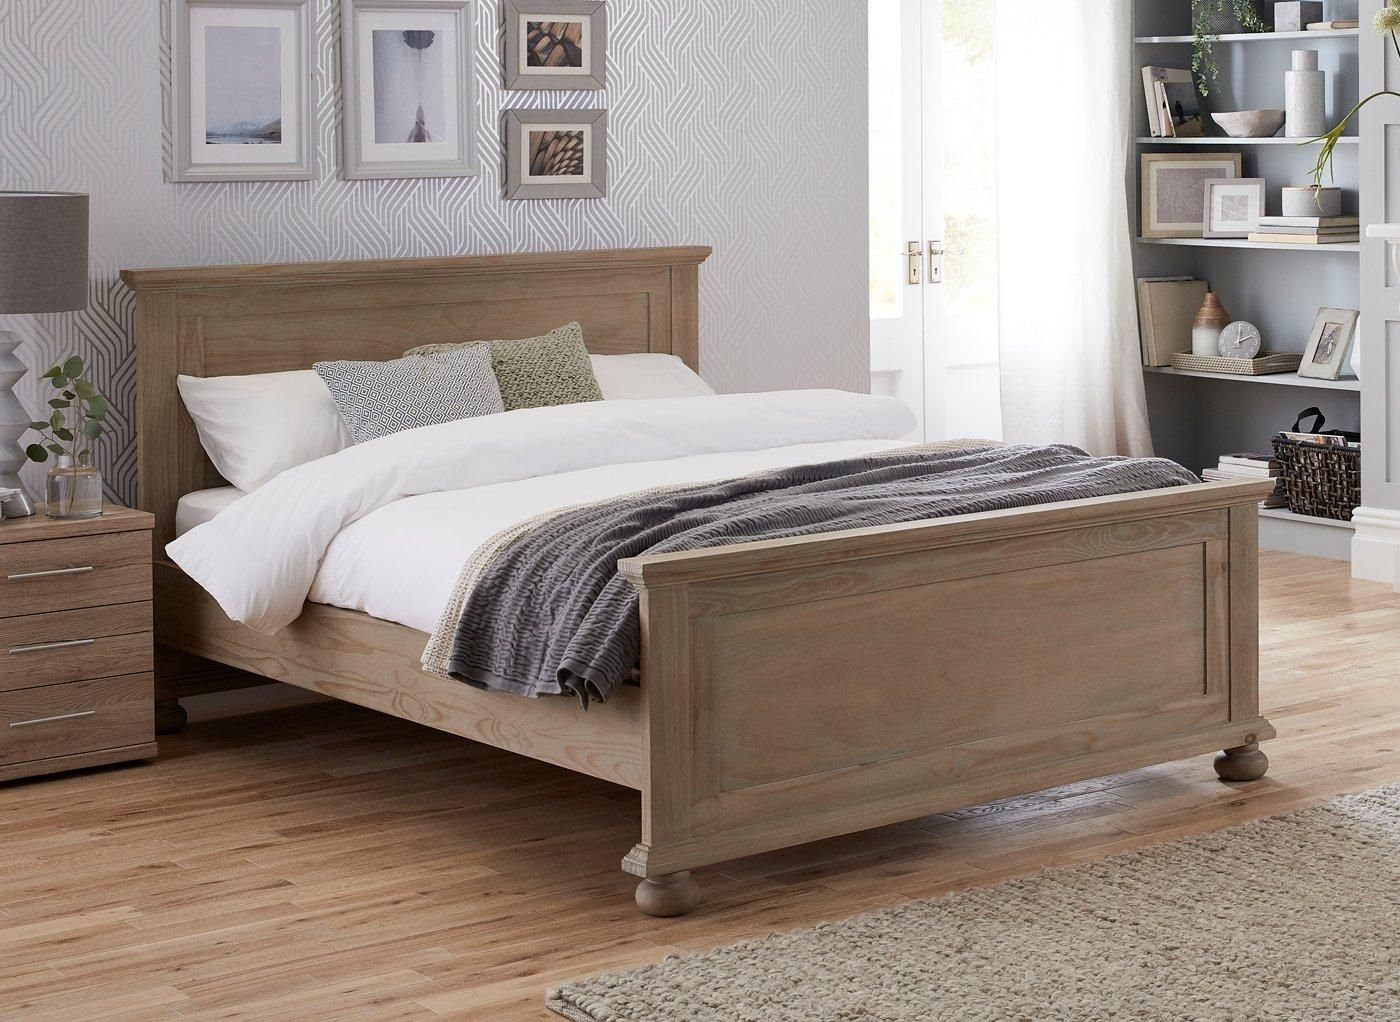 A Wooden Bed Creates A Warm Atmosphere Savillefurniture Wooden Bed Modern Bedroom Furniture Bed Design